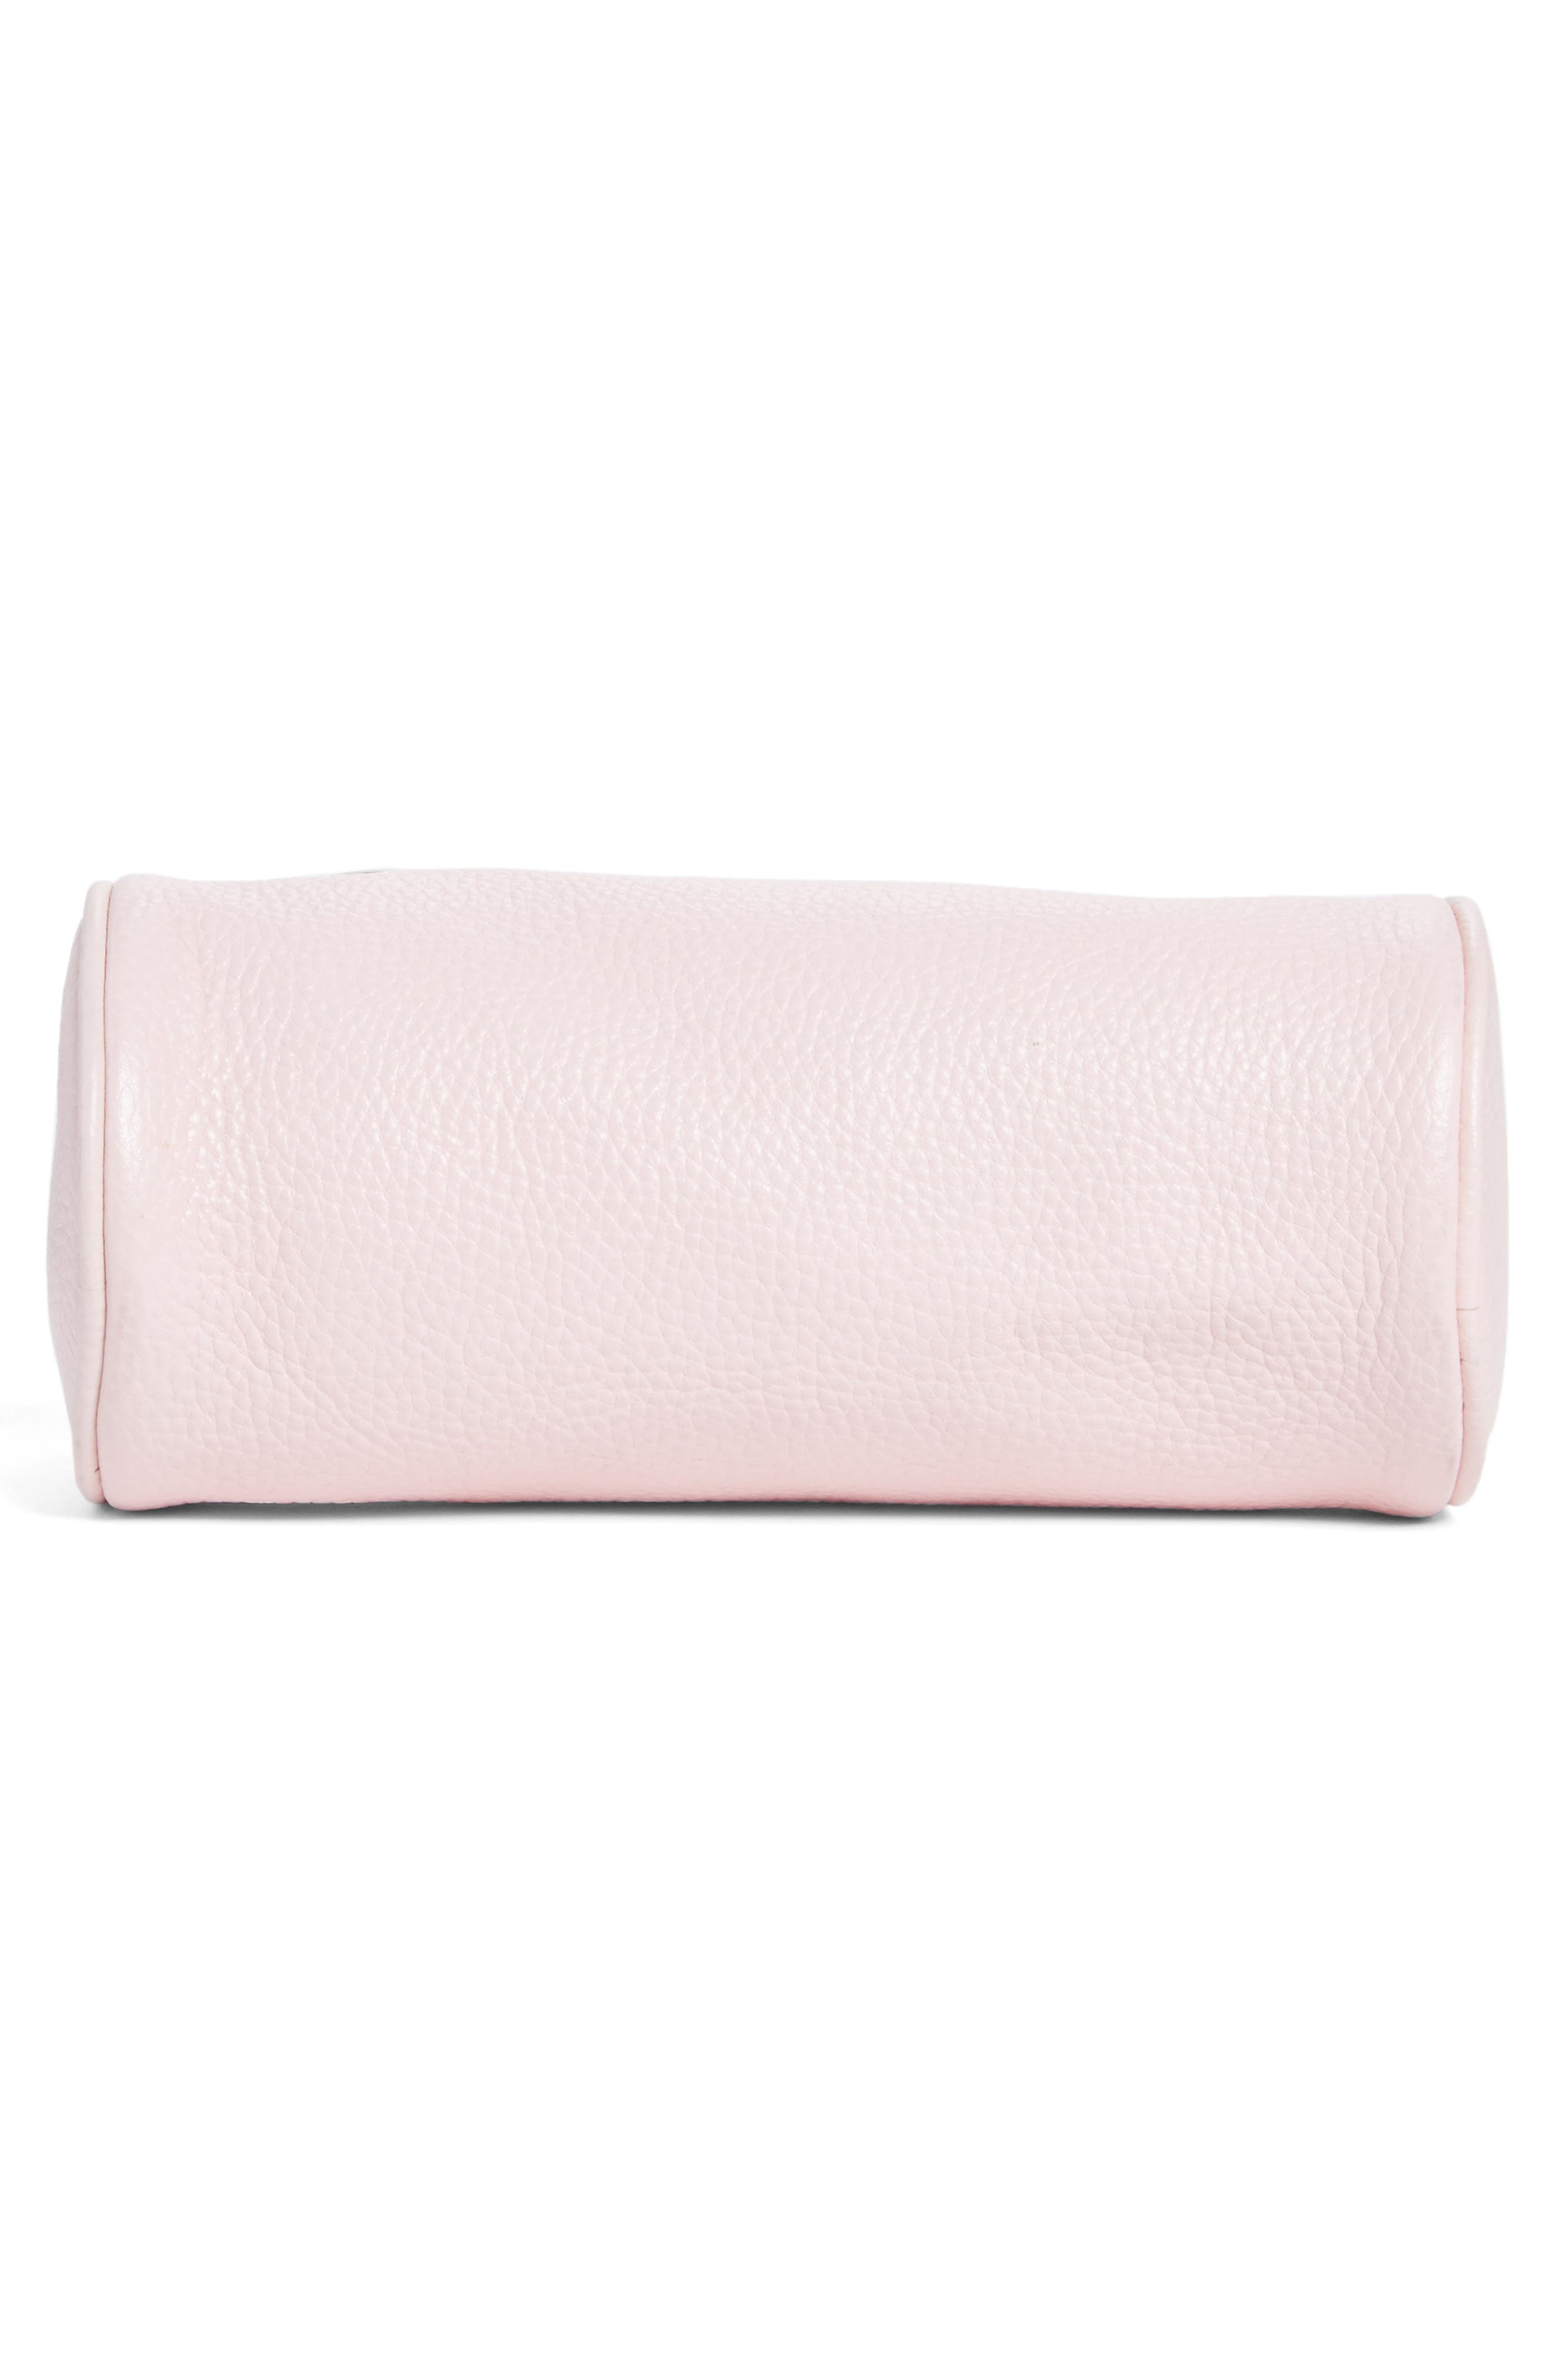 Pebbled Leather Duffel Wristlet Clutch,                             Alternate thumbnail 6, color,                             Blush Pink